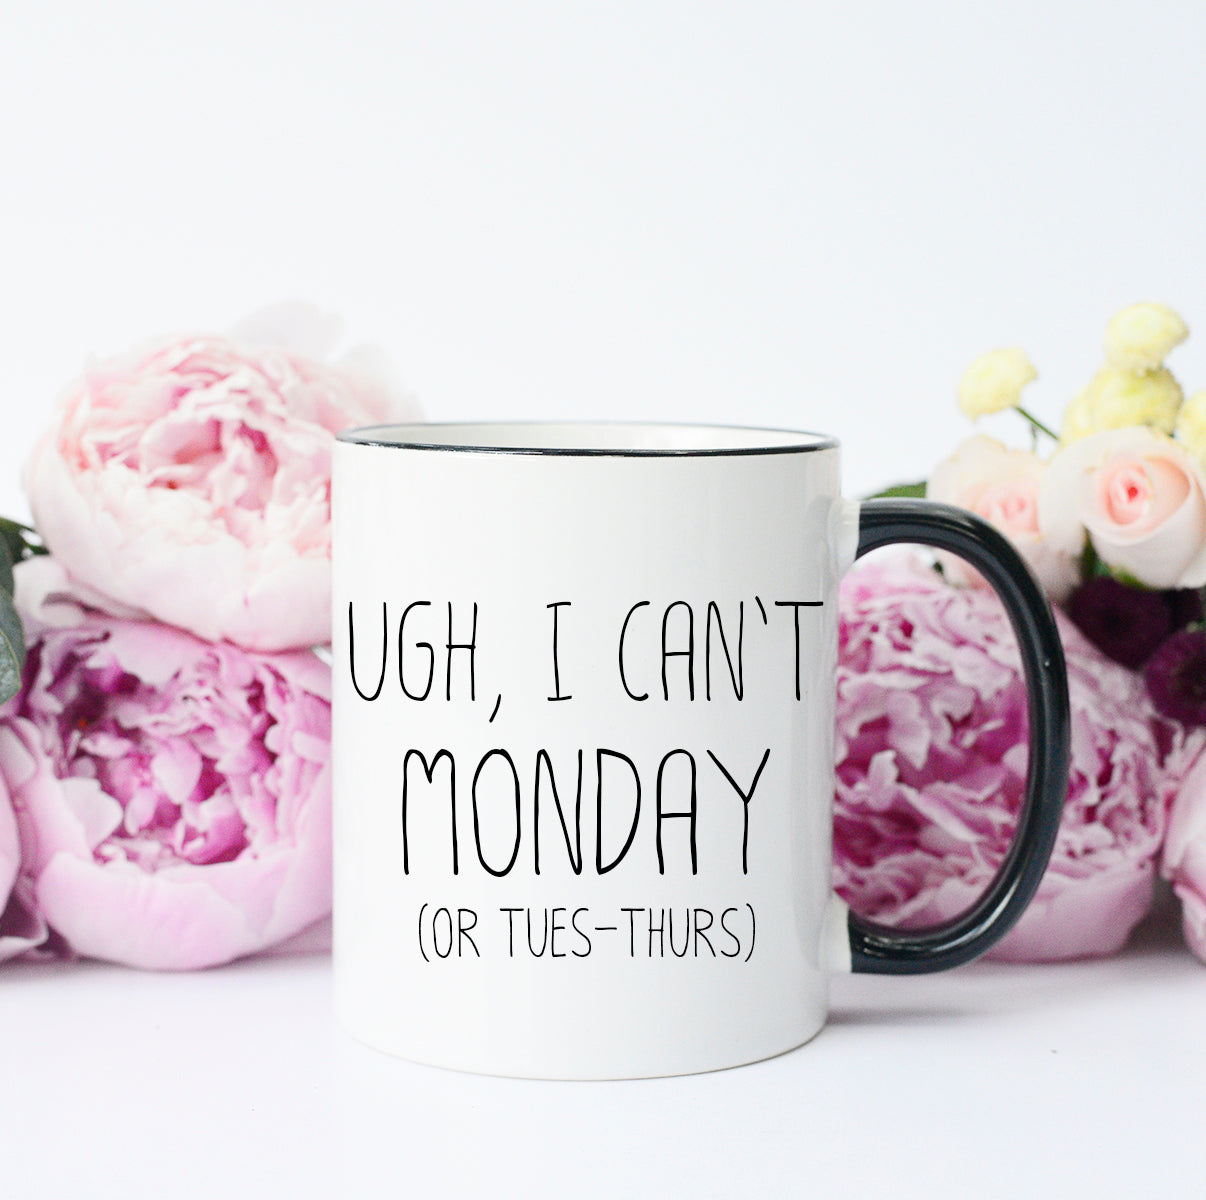 I can't monday